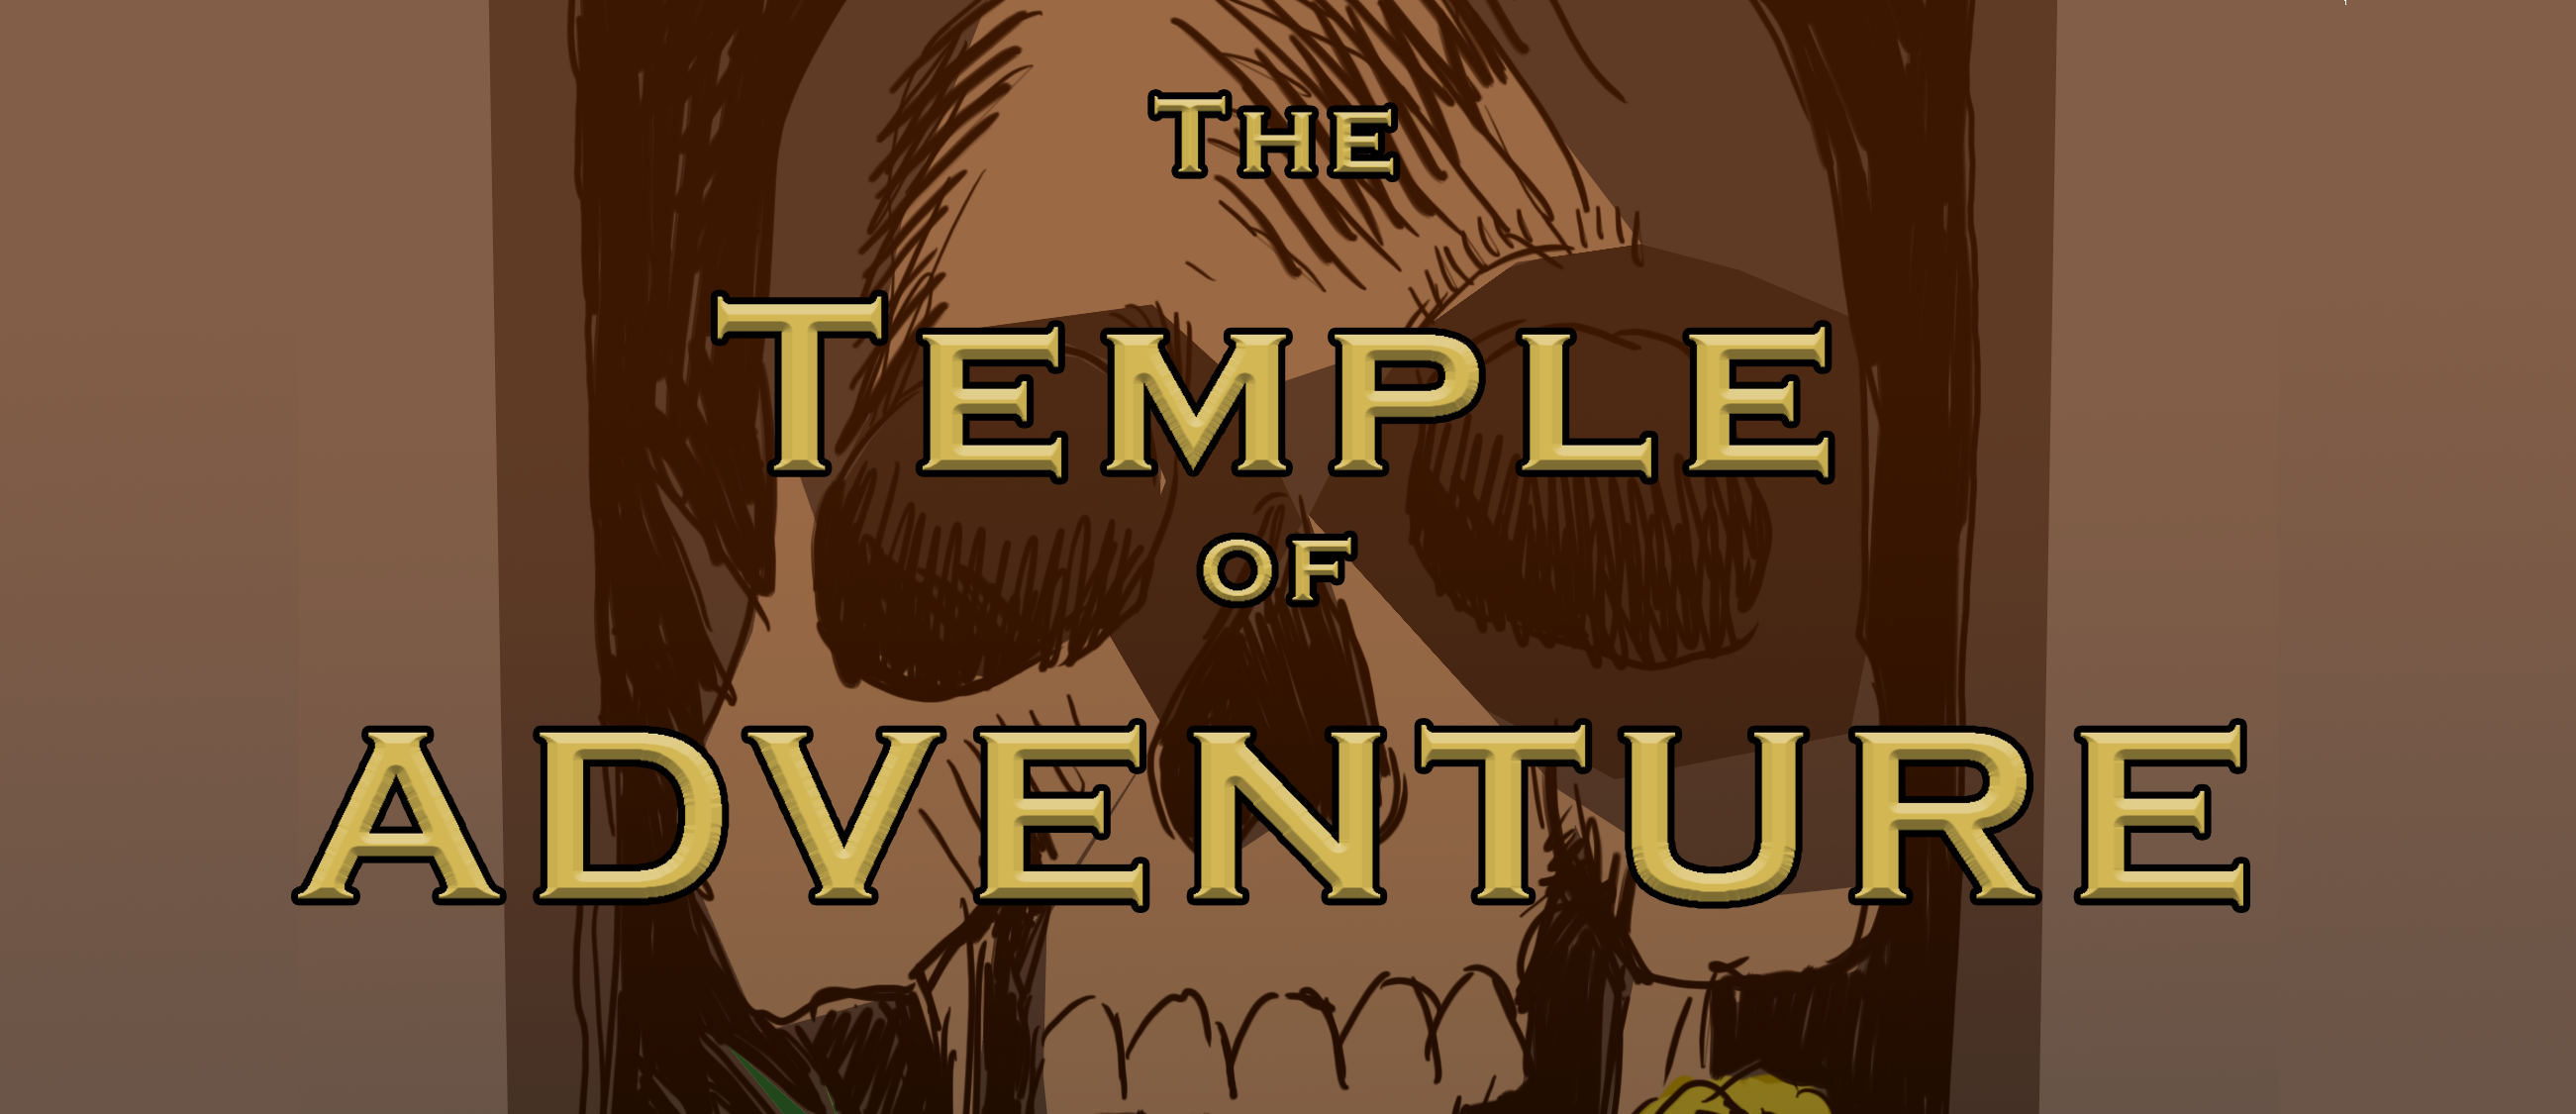 The Temple of ADVENTURE